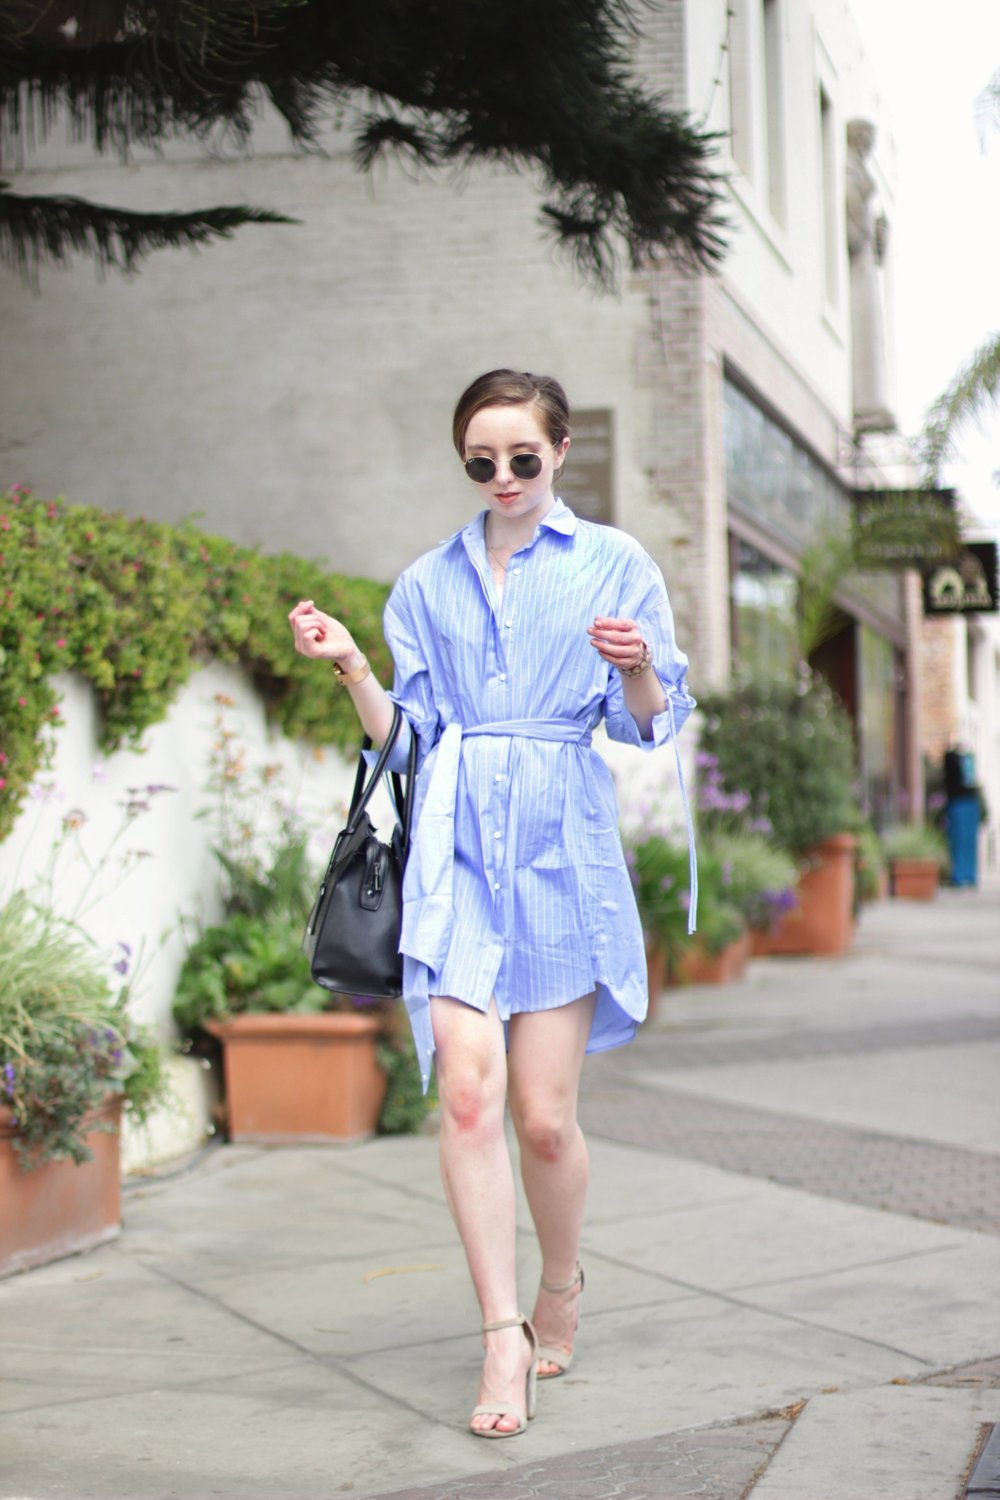 GET CHIC FOR CLASS IN A BUTTON DOWN DRESS - SHOP HUGE END OF SUMMER SALES ONLINE AT ZAFUL.COM